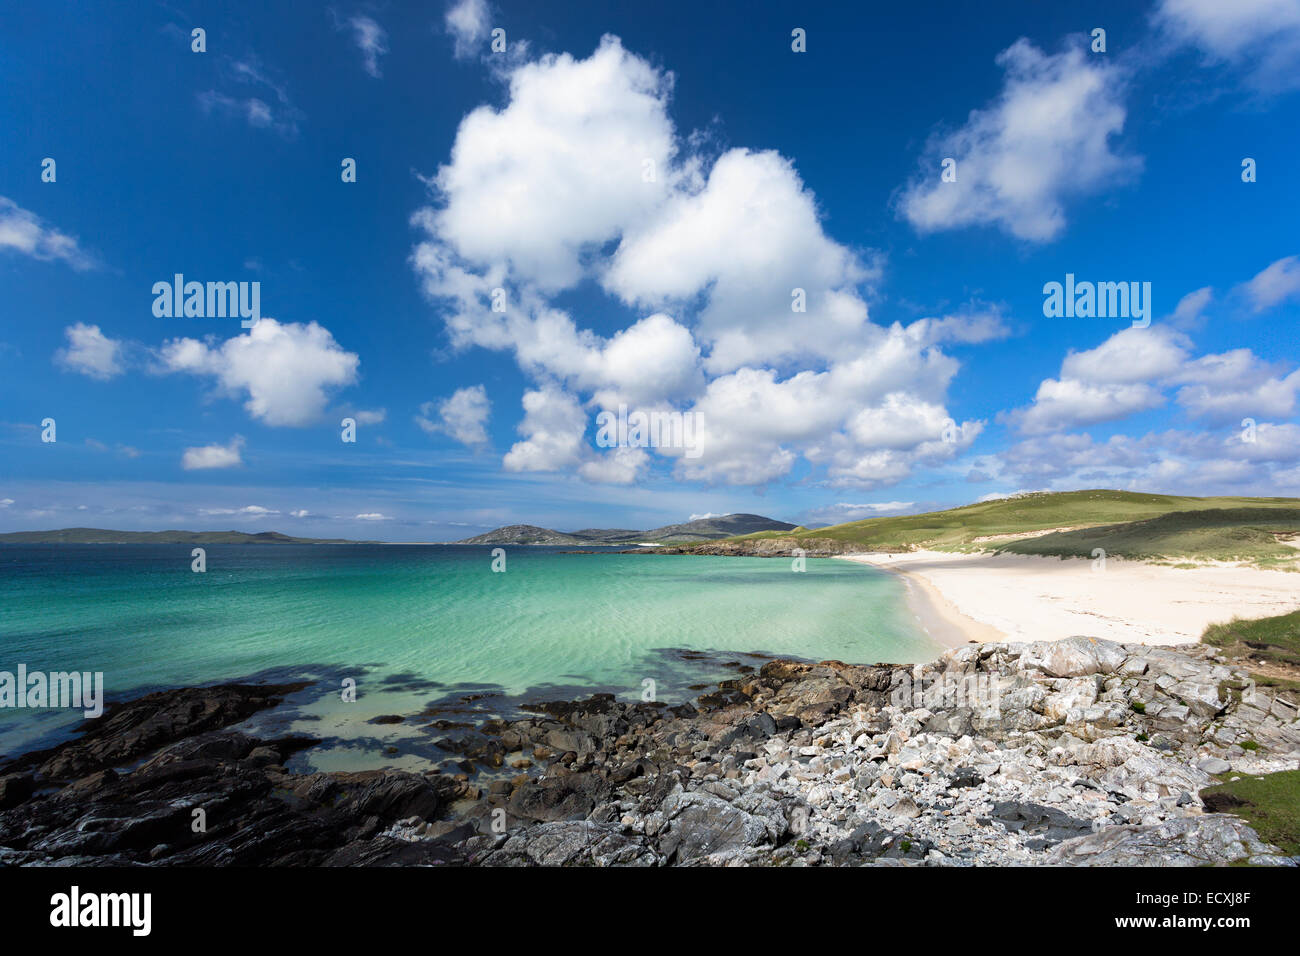 Turquoise waters of Luskentyre beach on the Isle of Harris, Outer Hebrides, Scotland - Stock Image